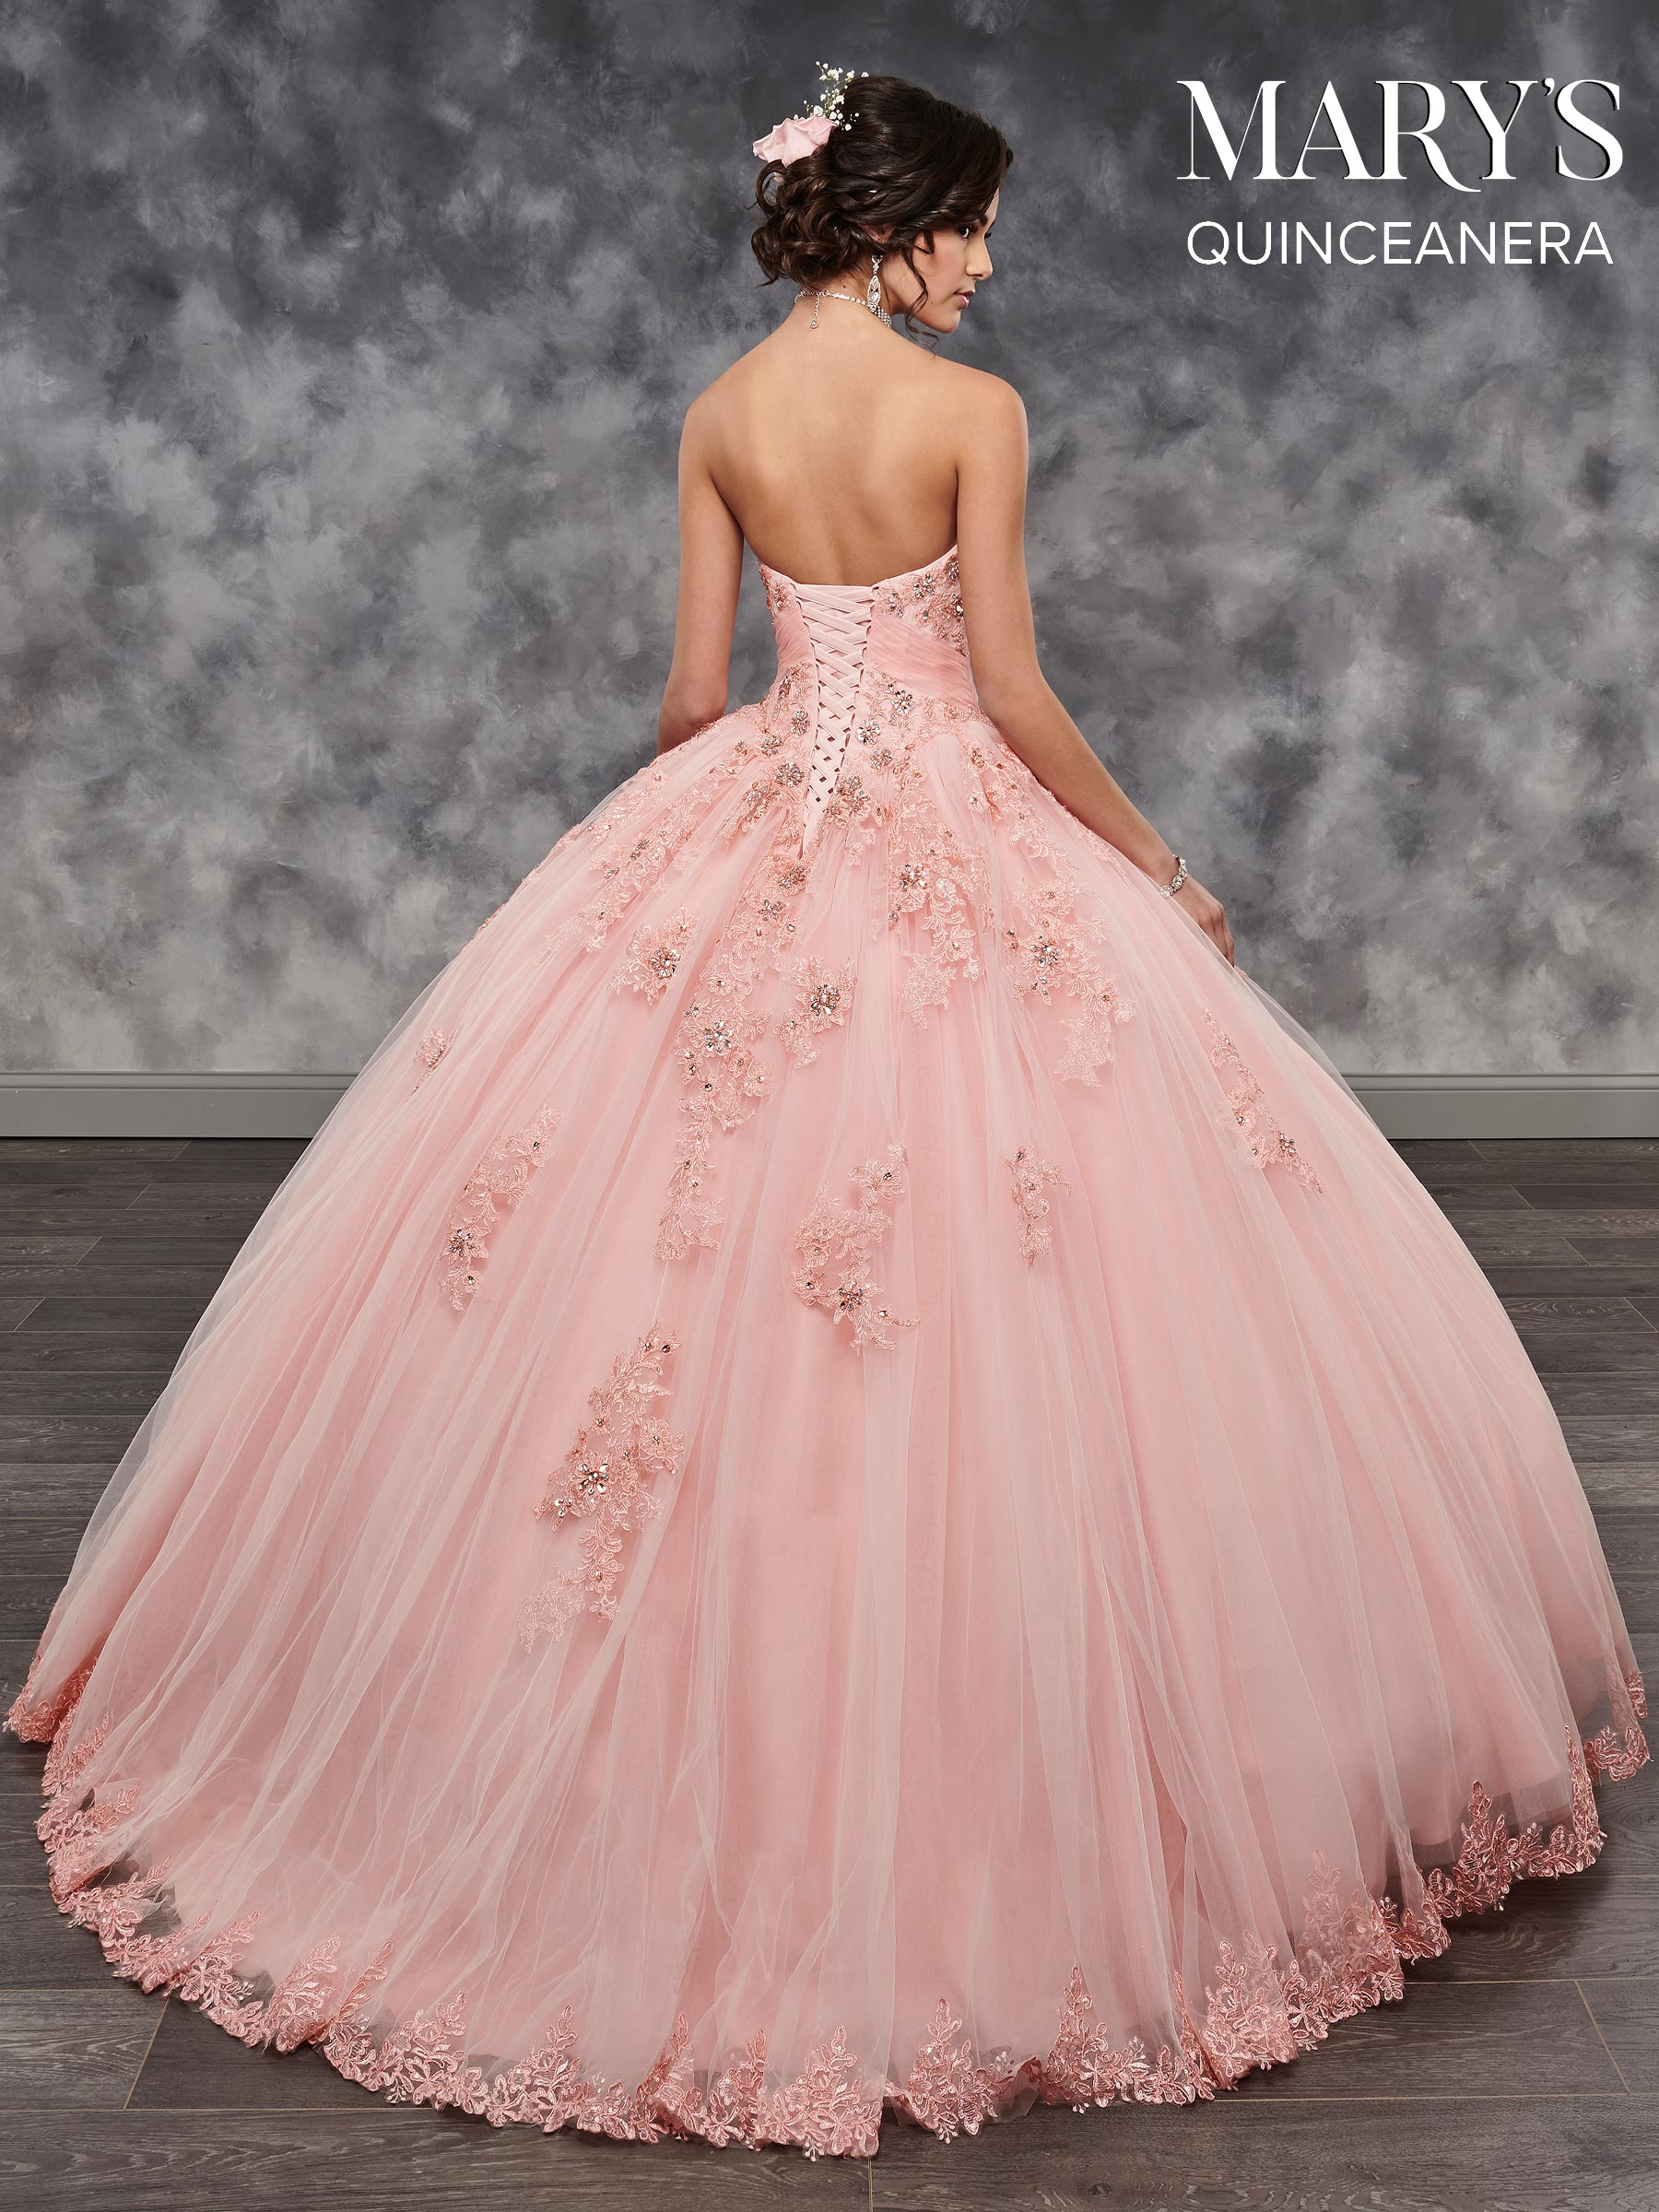 Marys Quinceanera Dresses | Mary's Quinceanera | Style - MQ2036